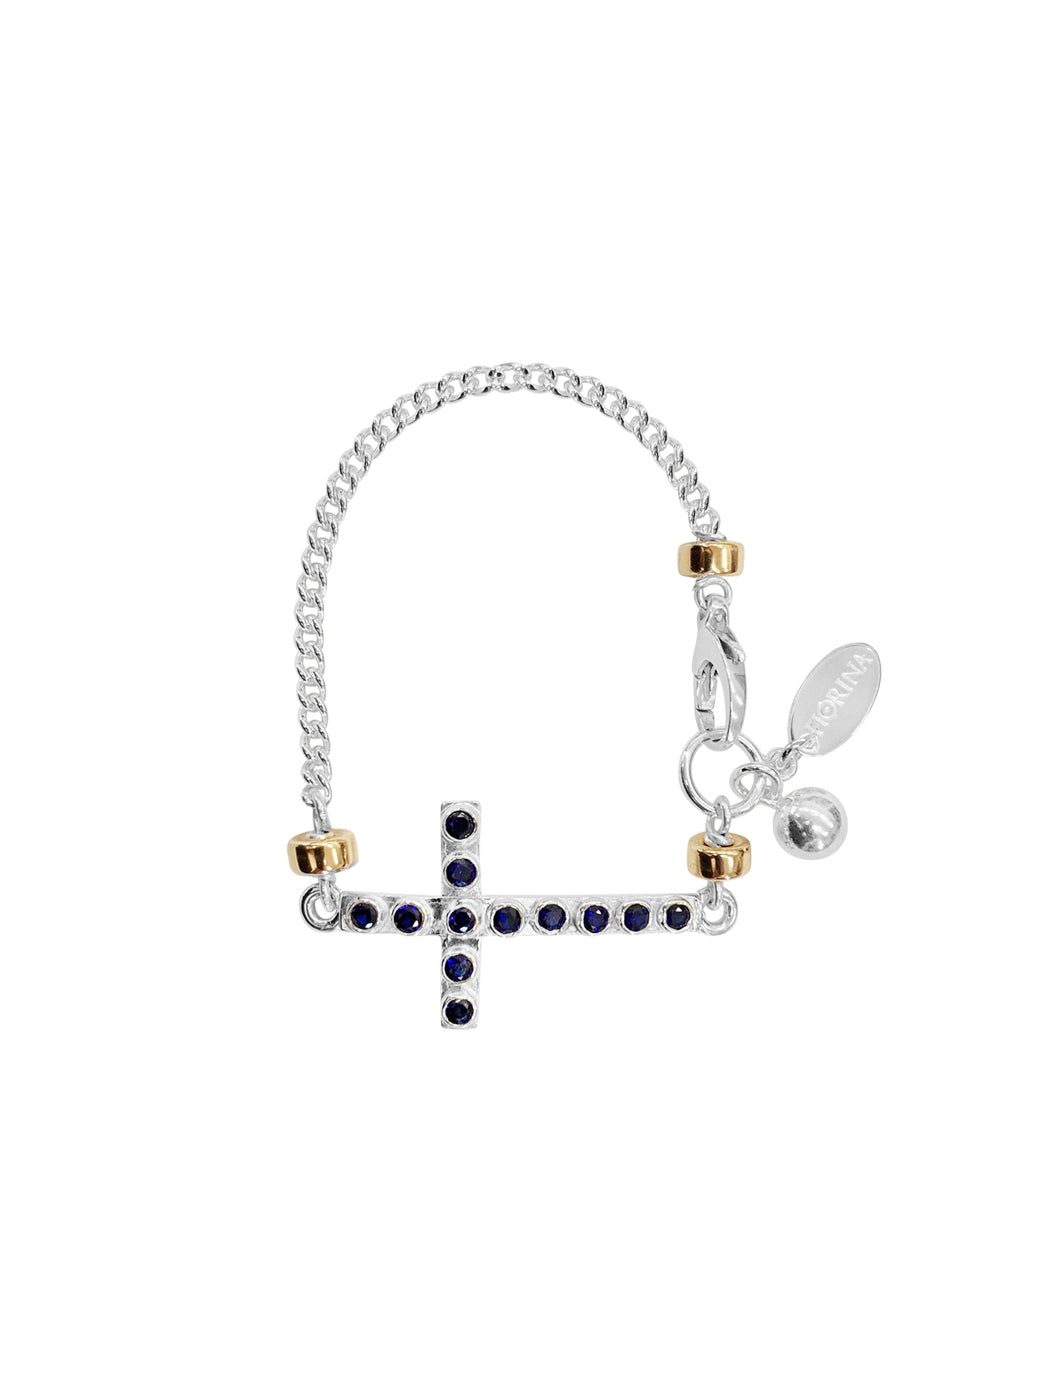 Fiorina Jewellery La Vie Side Cross Bracelet Blue Sapphire